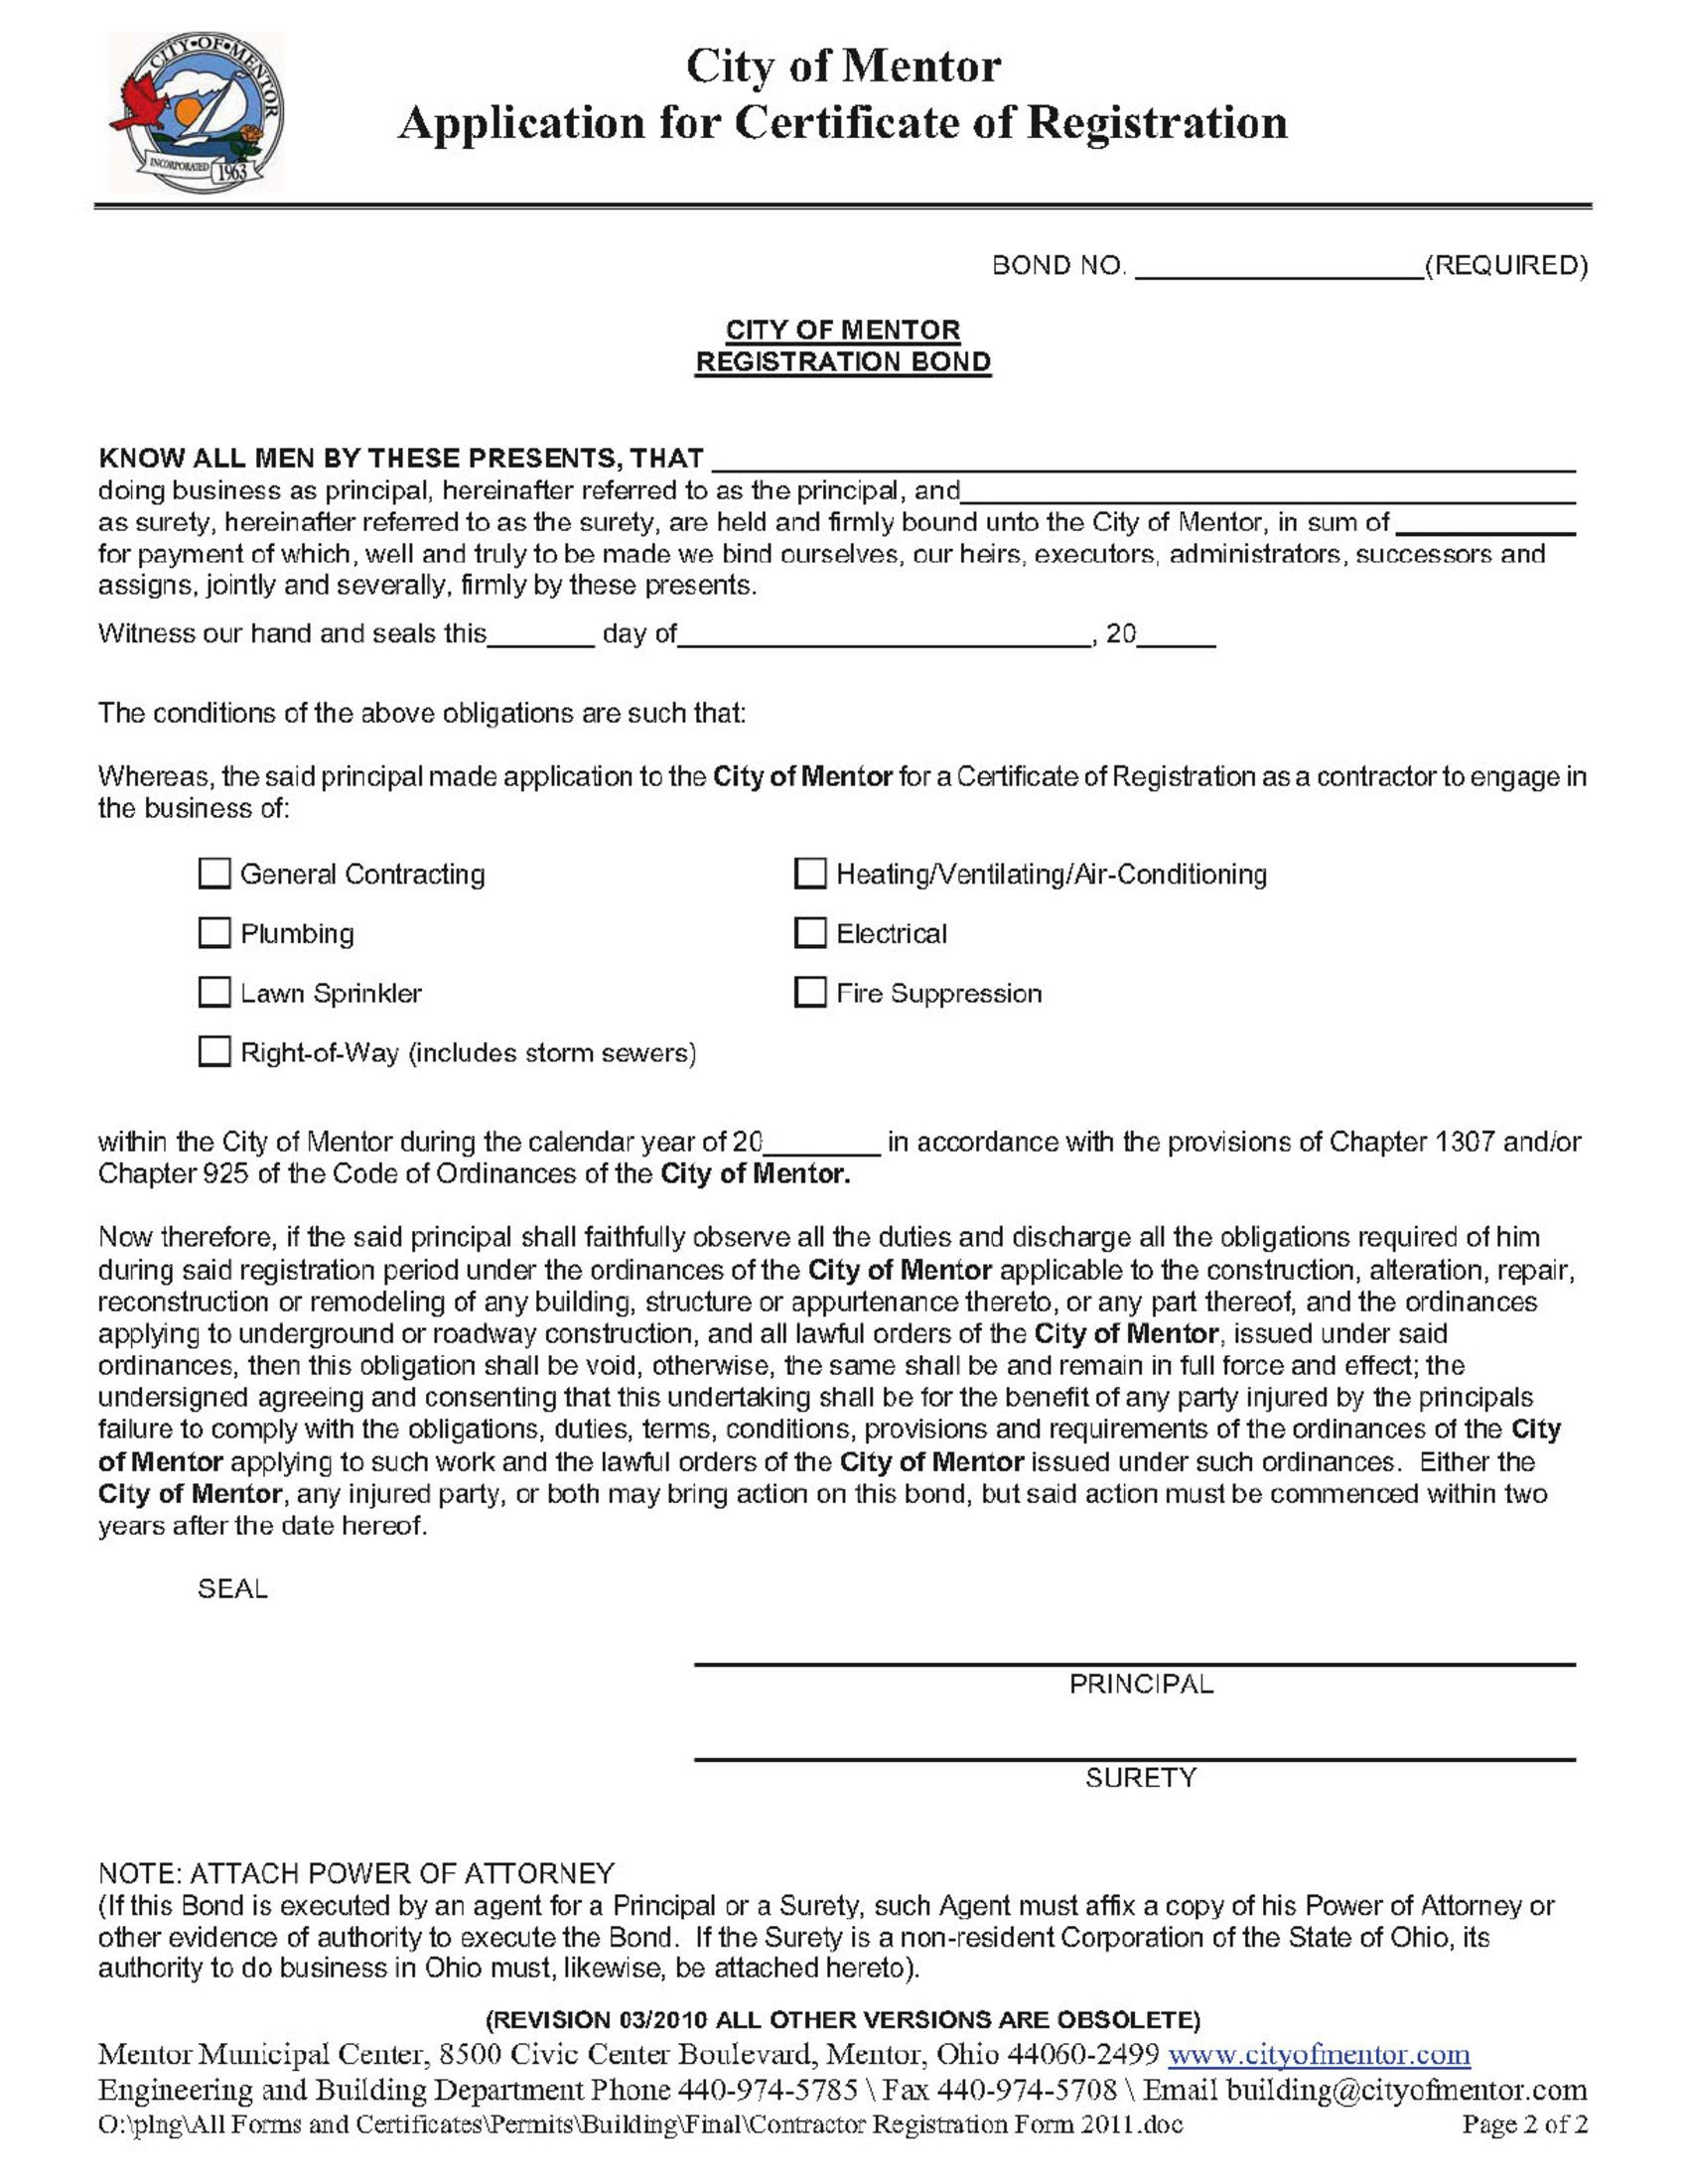 Mentor - City Certificate of Registration - General Contracting sample image